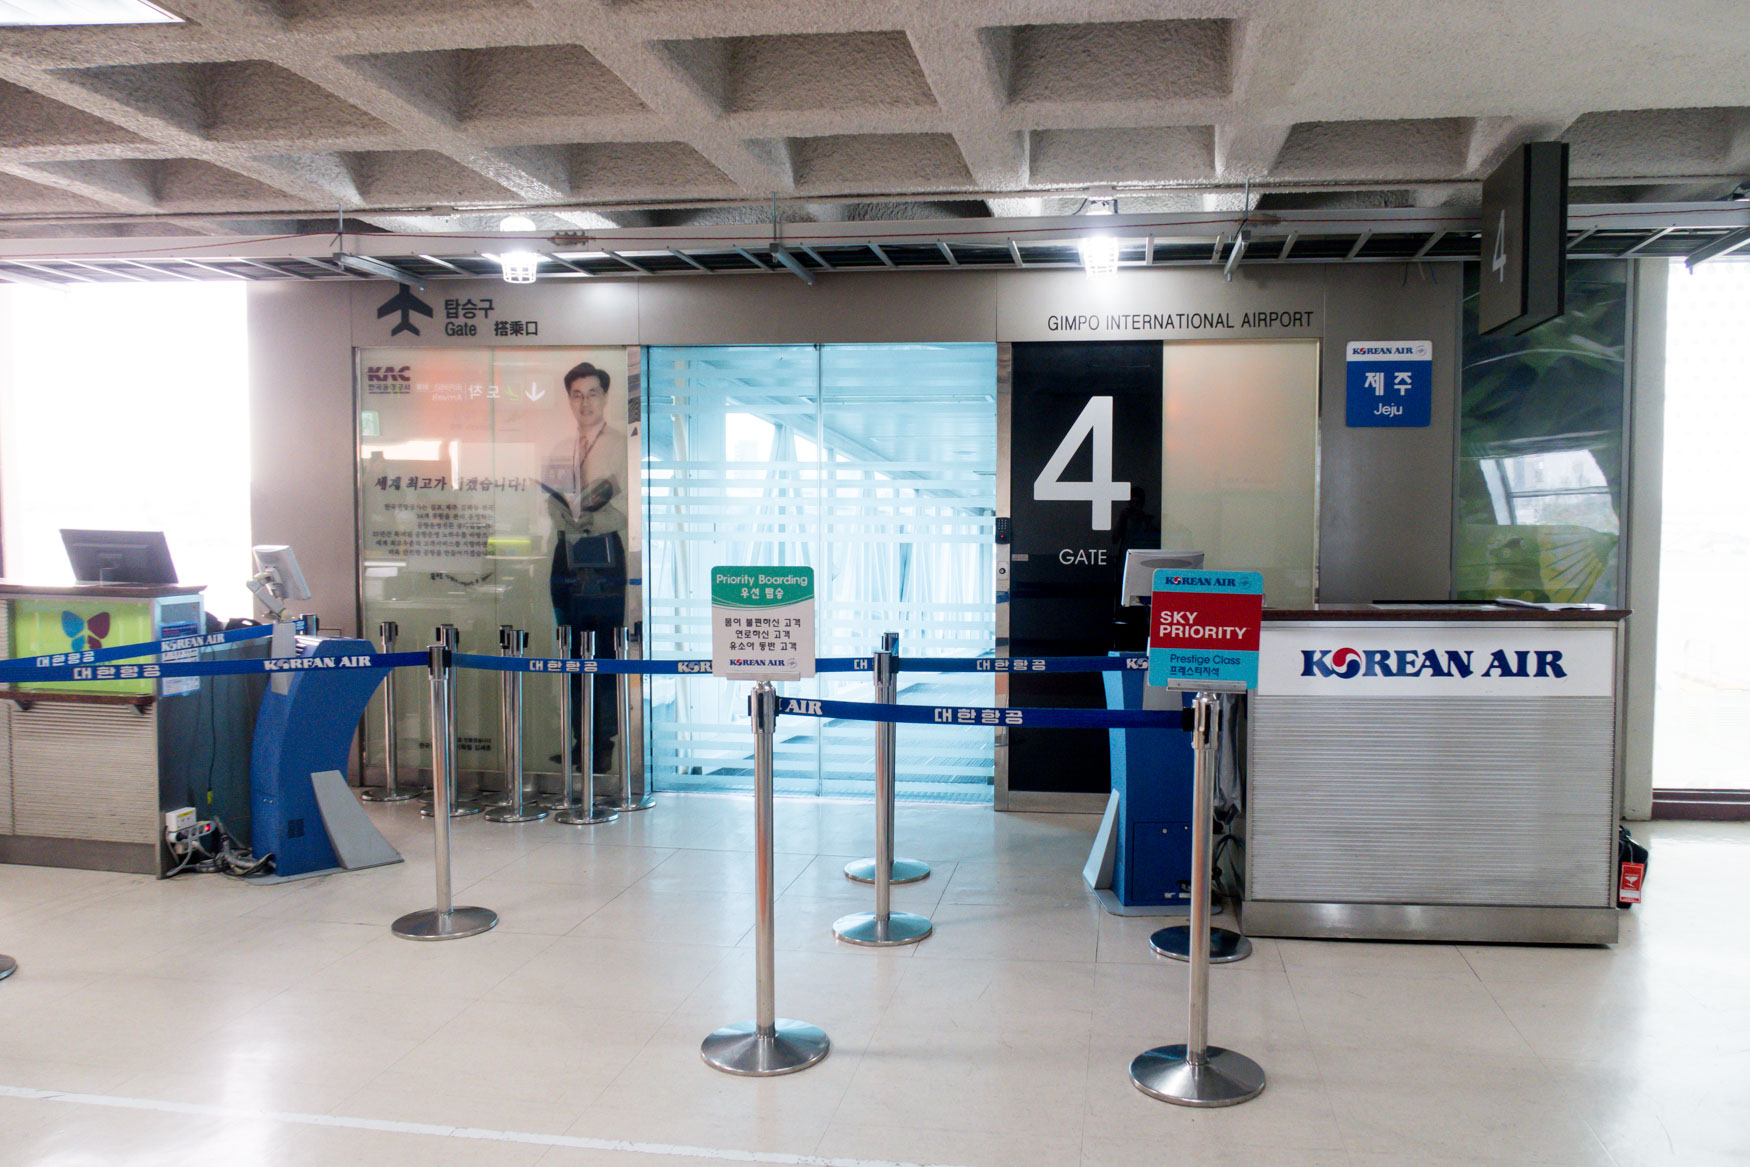 Gimpo Airport Gate 4